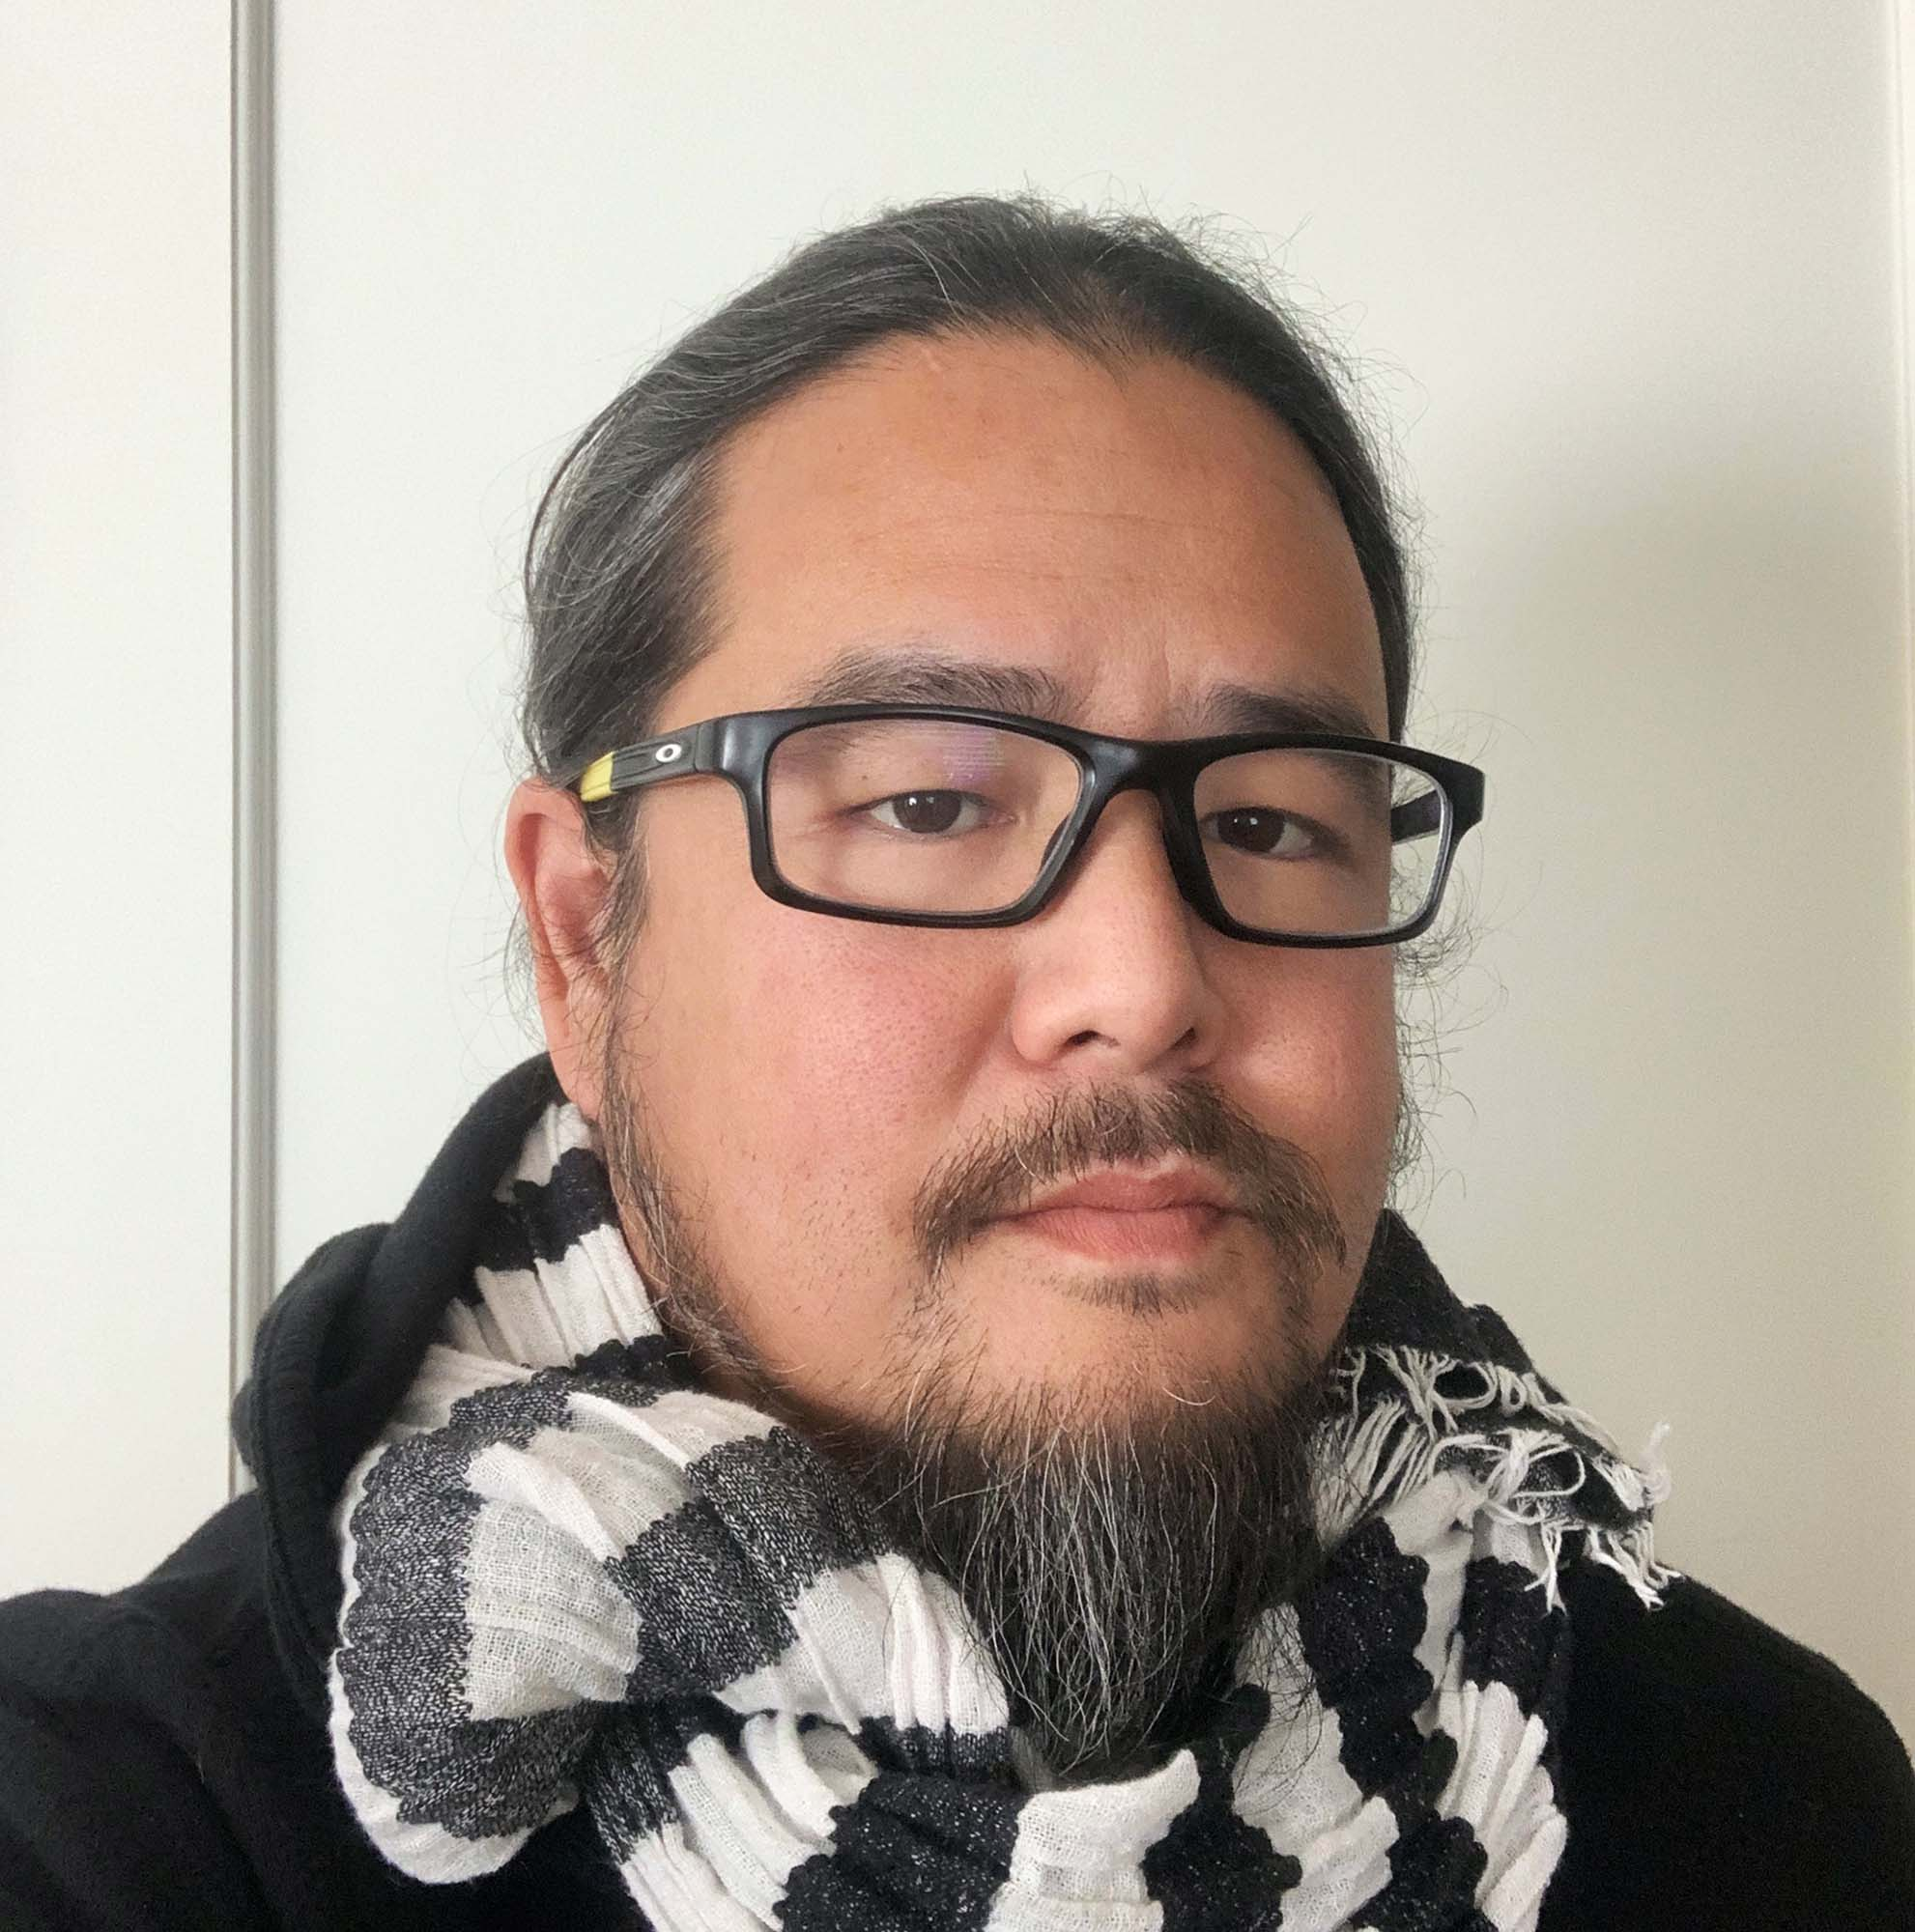 selfie of a man wearing a scarf and glasses